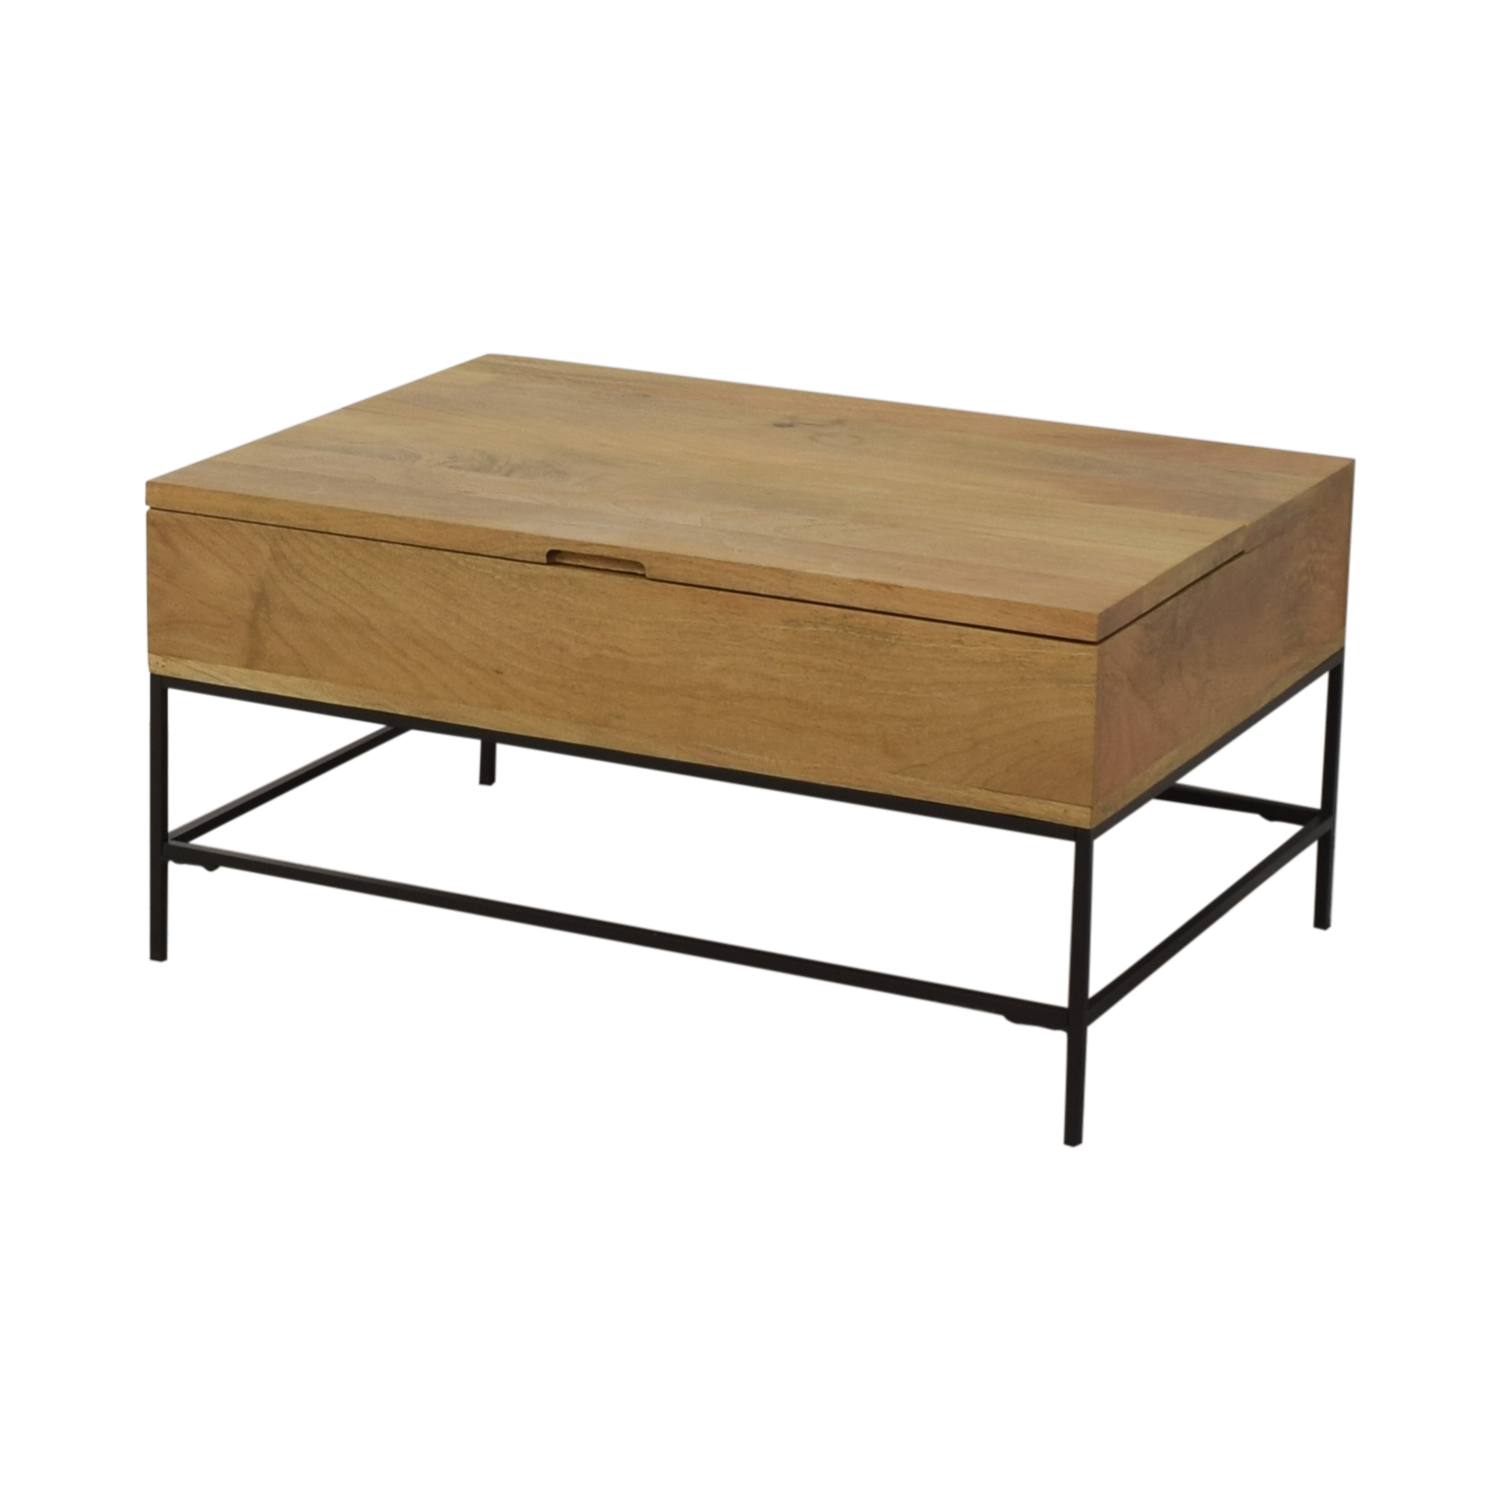 West Elm West Elm Industrial Storage Pop-Up Coffee Table on sale